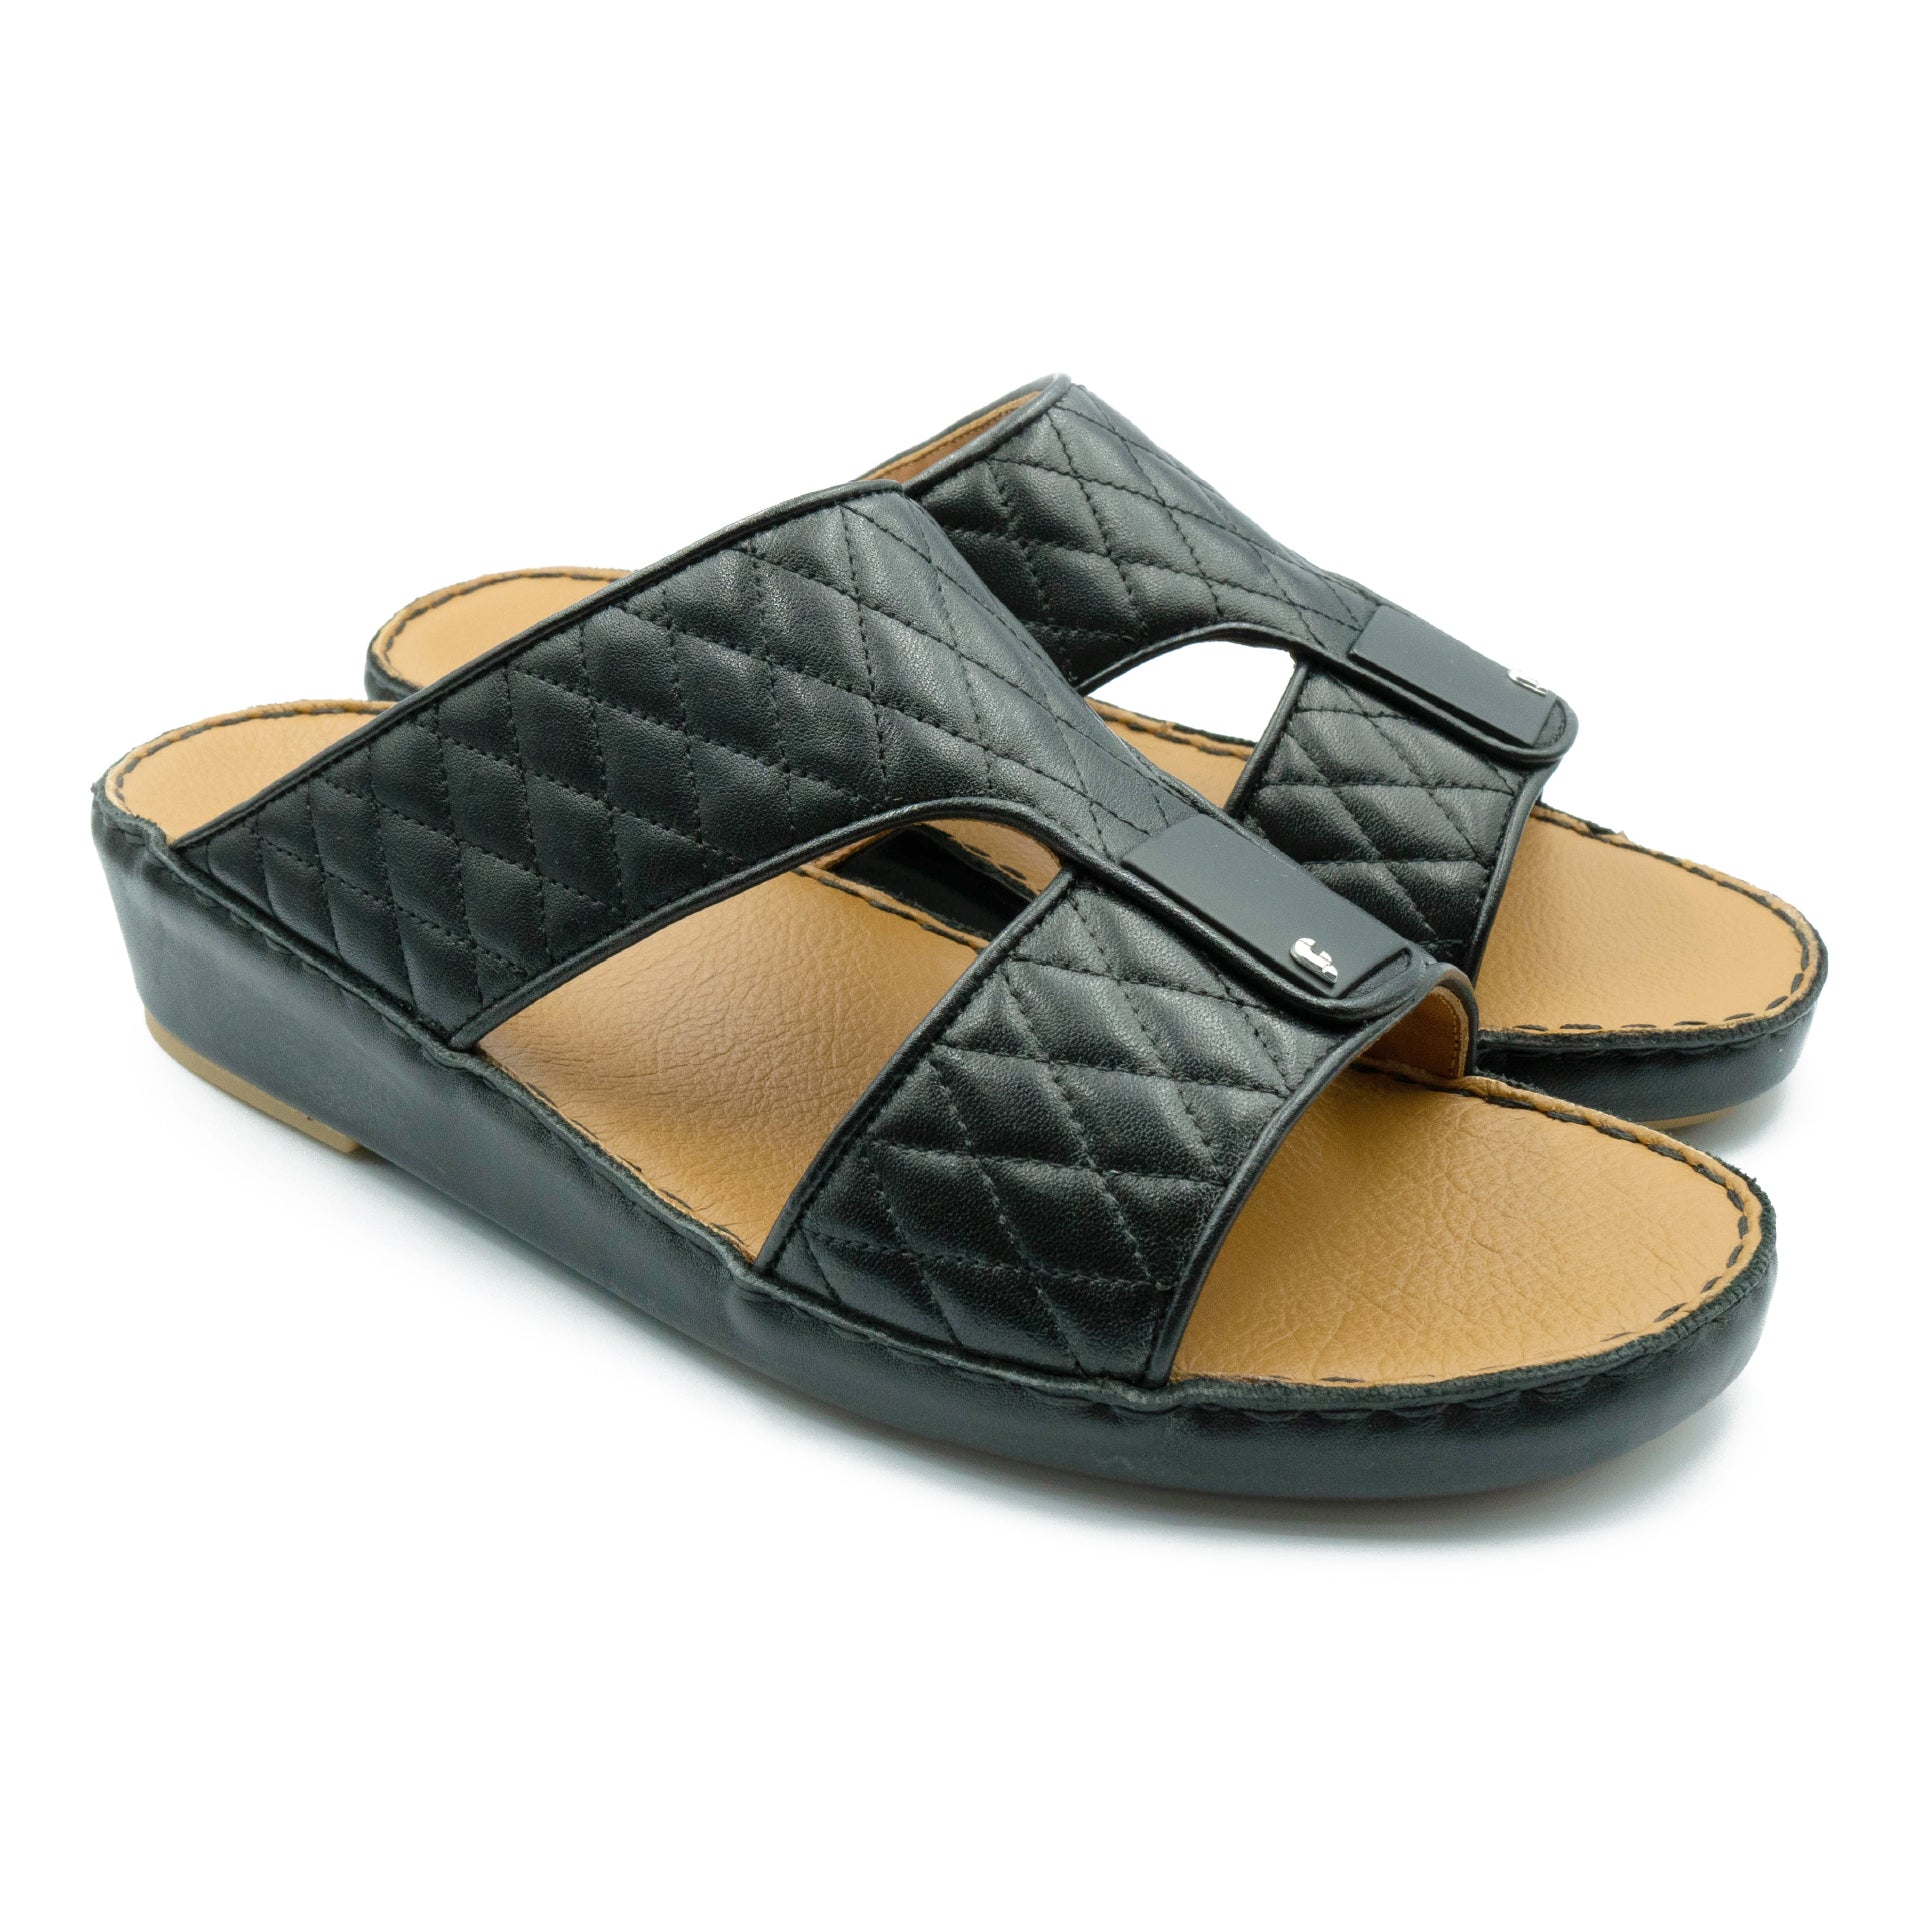 Black, Flat, Diamond, stiched, Flat, Sandals, Ramadan, Collection, Arabic, Sandals, Accessories